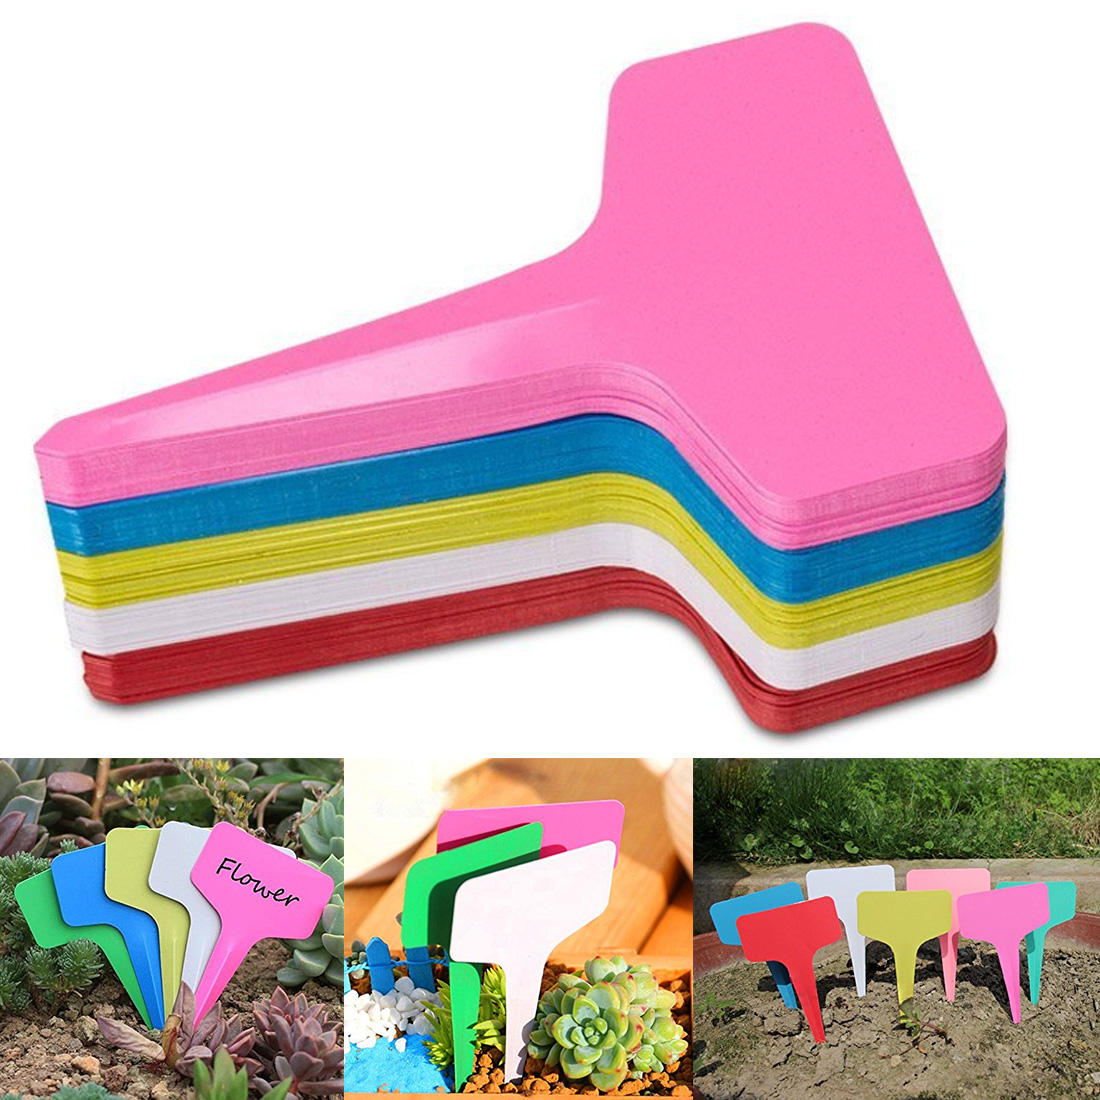 Flower Vegetable Planting Label Tools Farm Garden Seedling Tray 20pcs Gardening Plant T Shape Waterproof Tags Mark Garden Tools